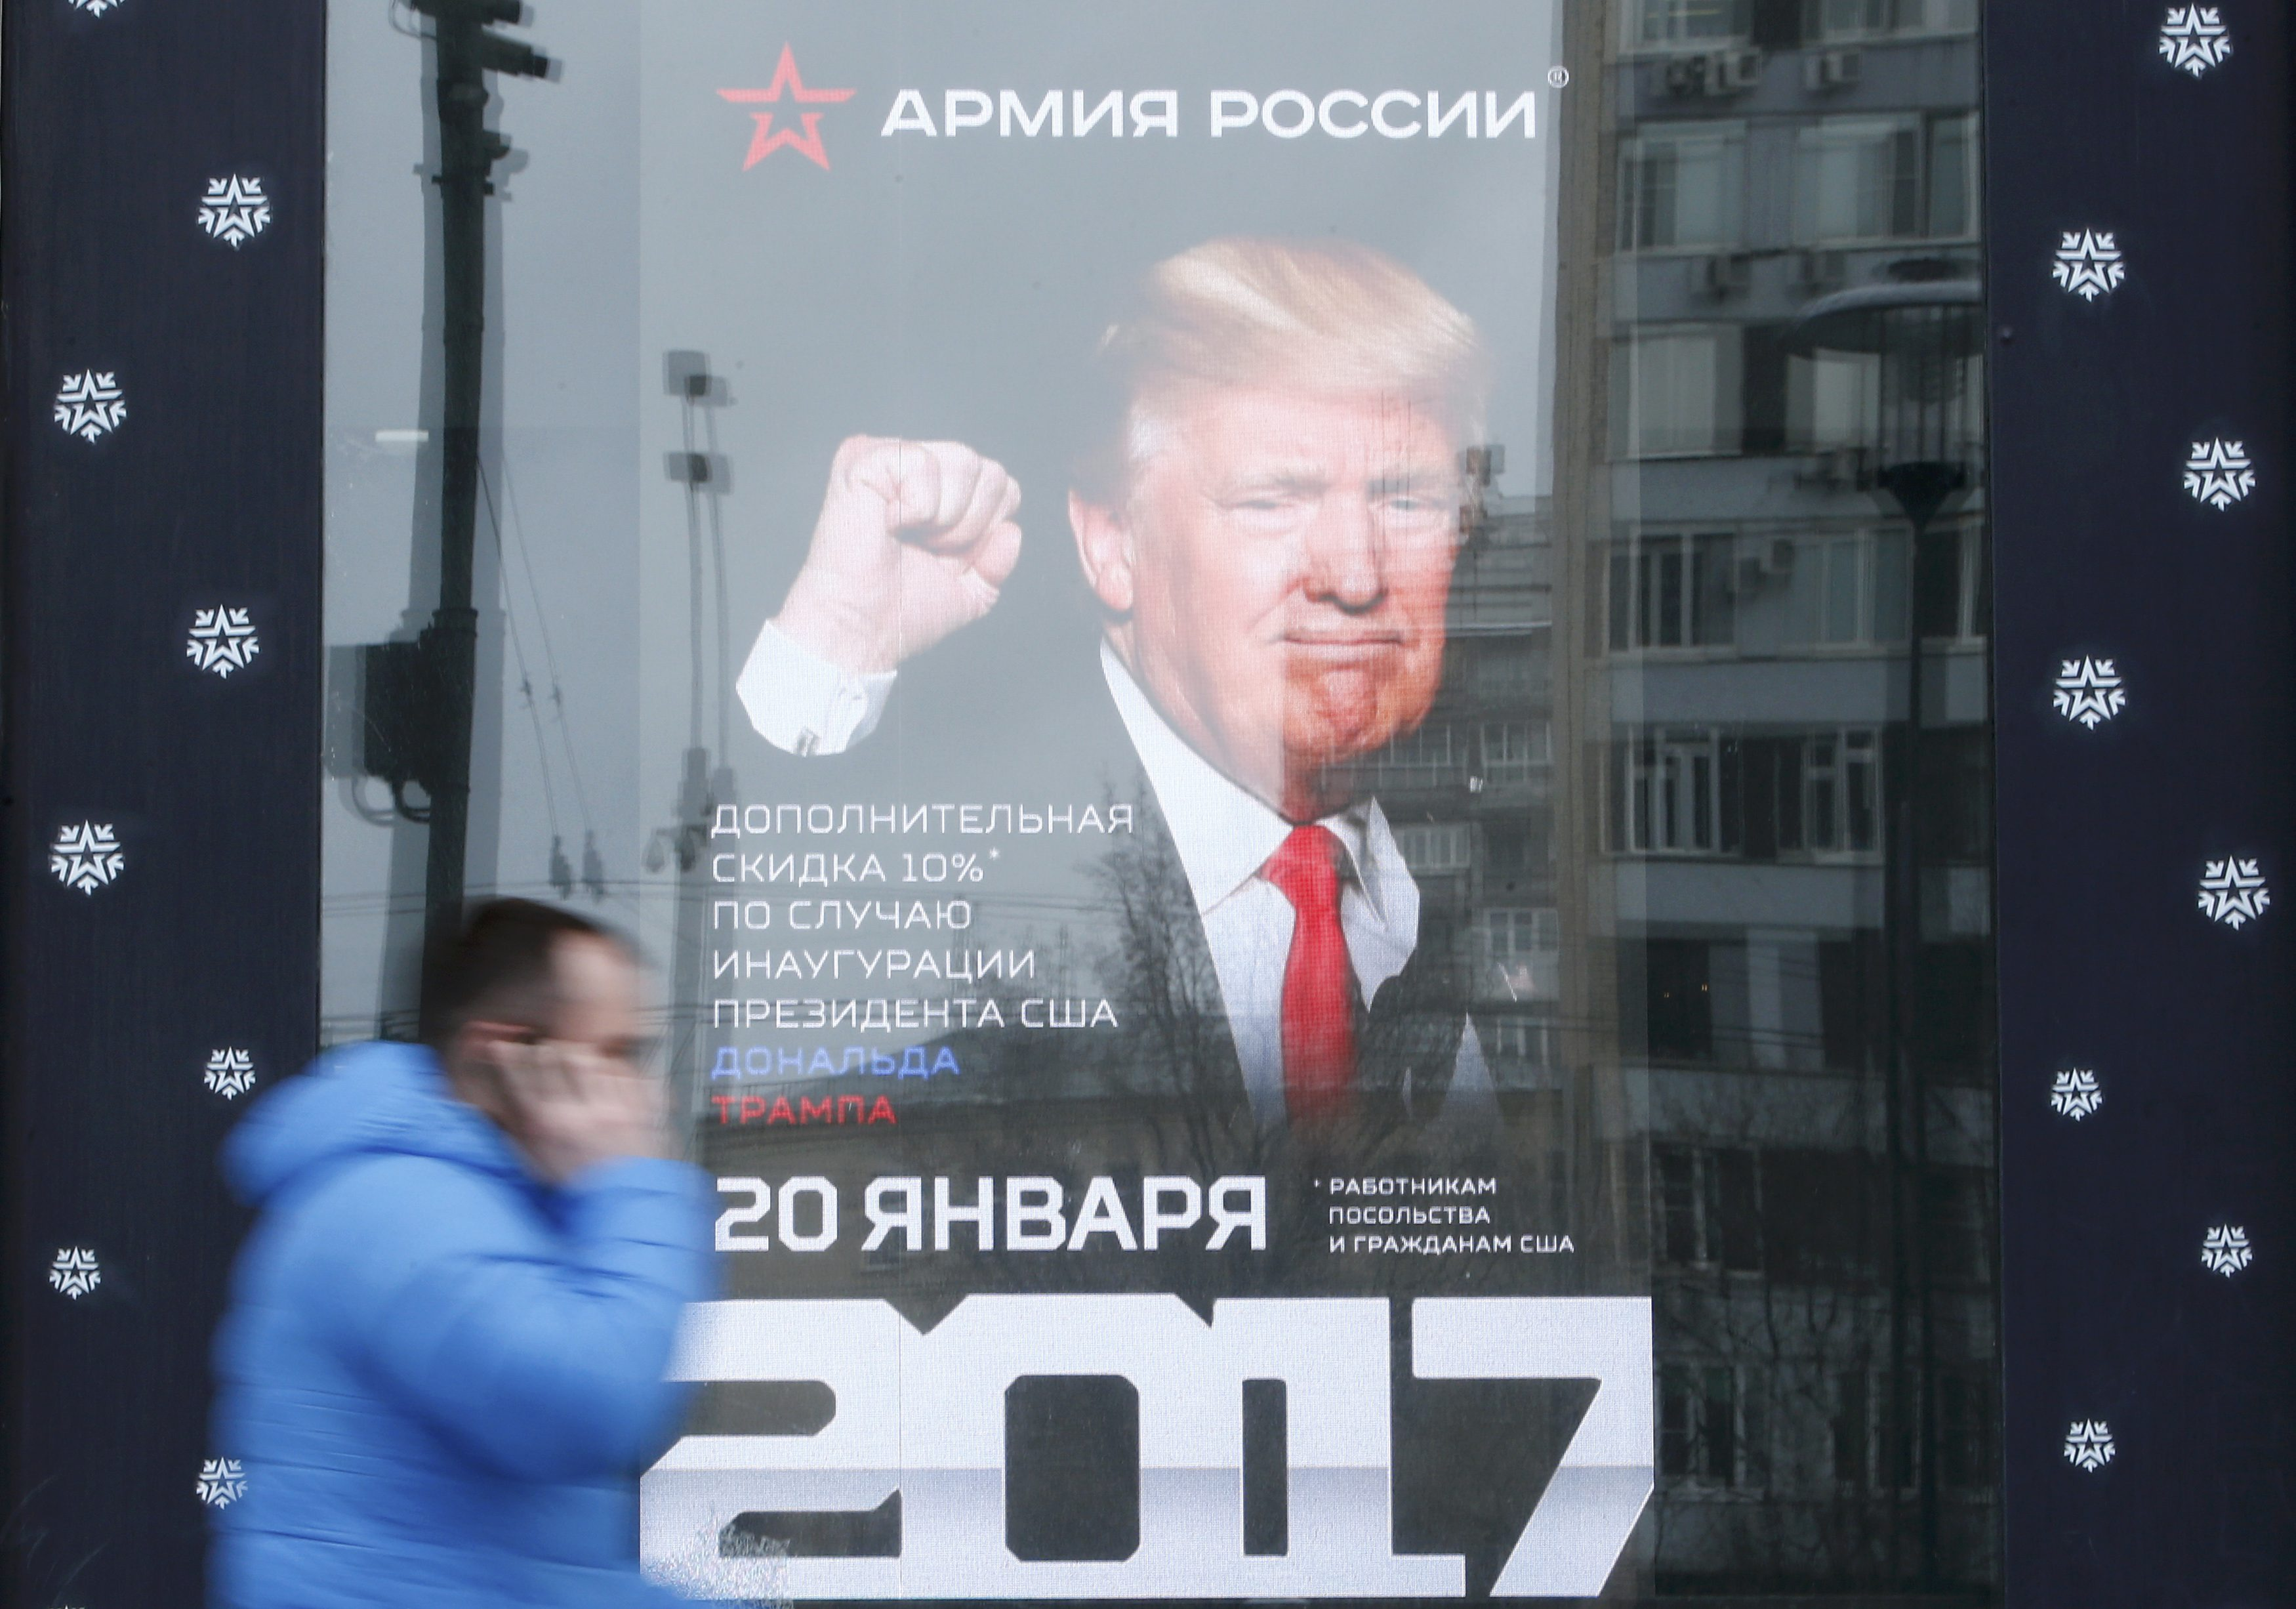 poster of Donald Trump in Russia